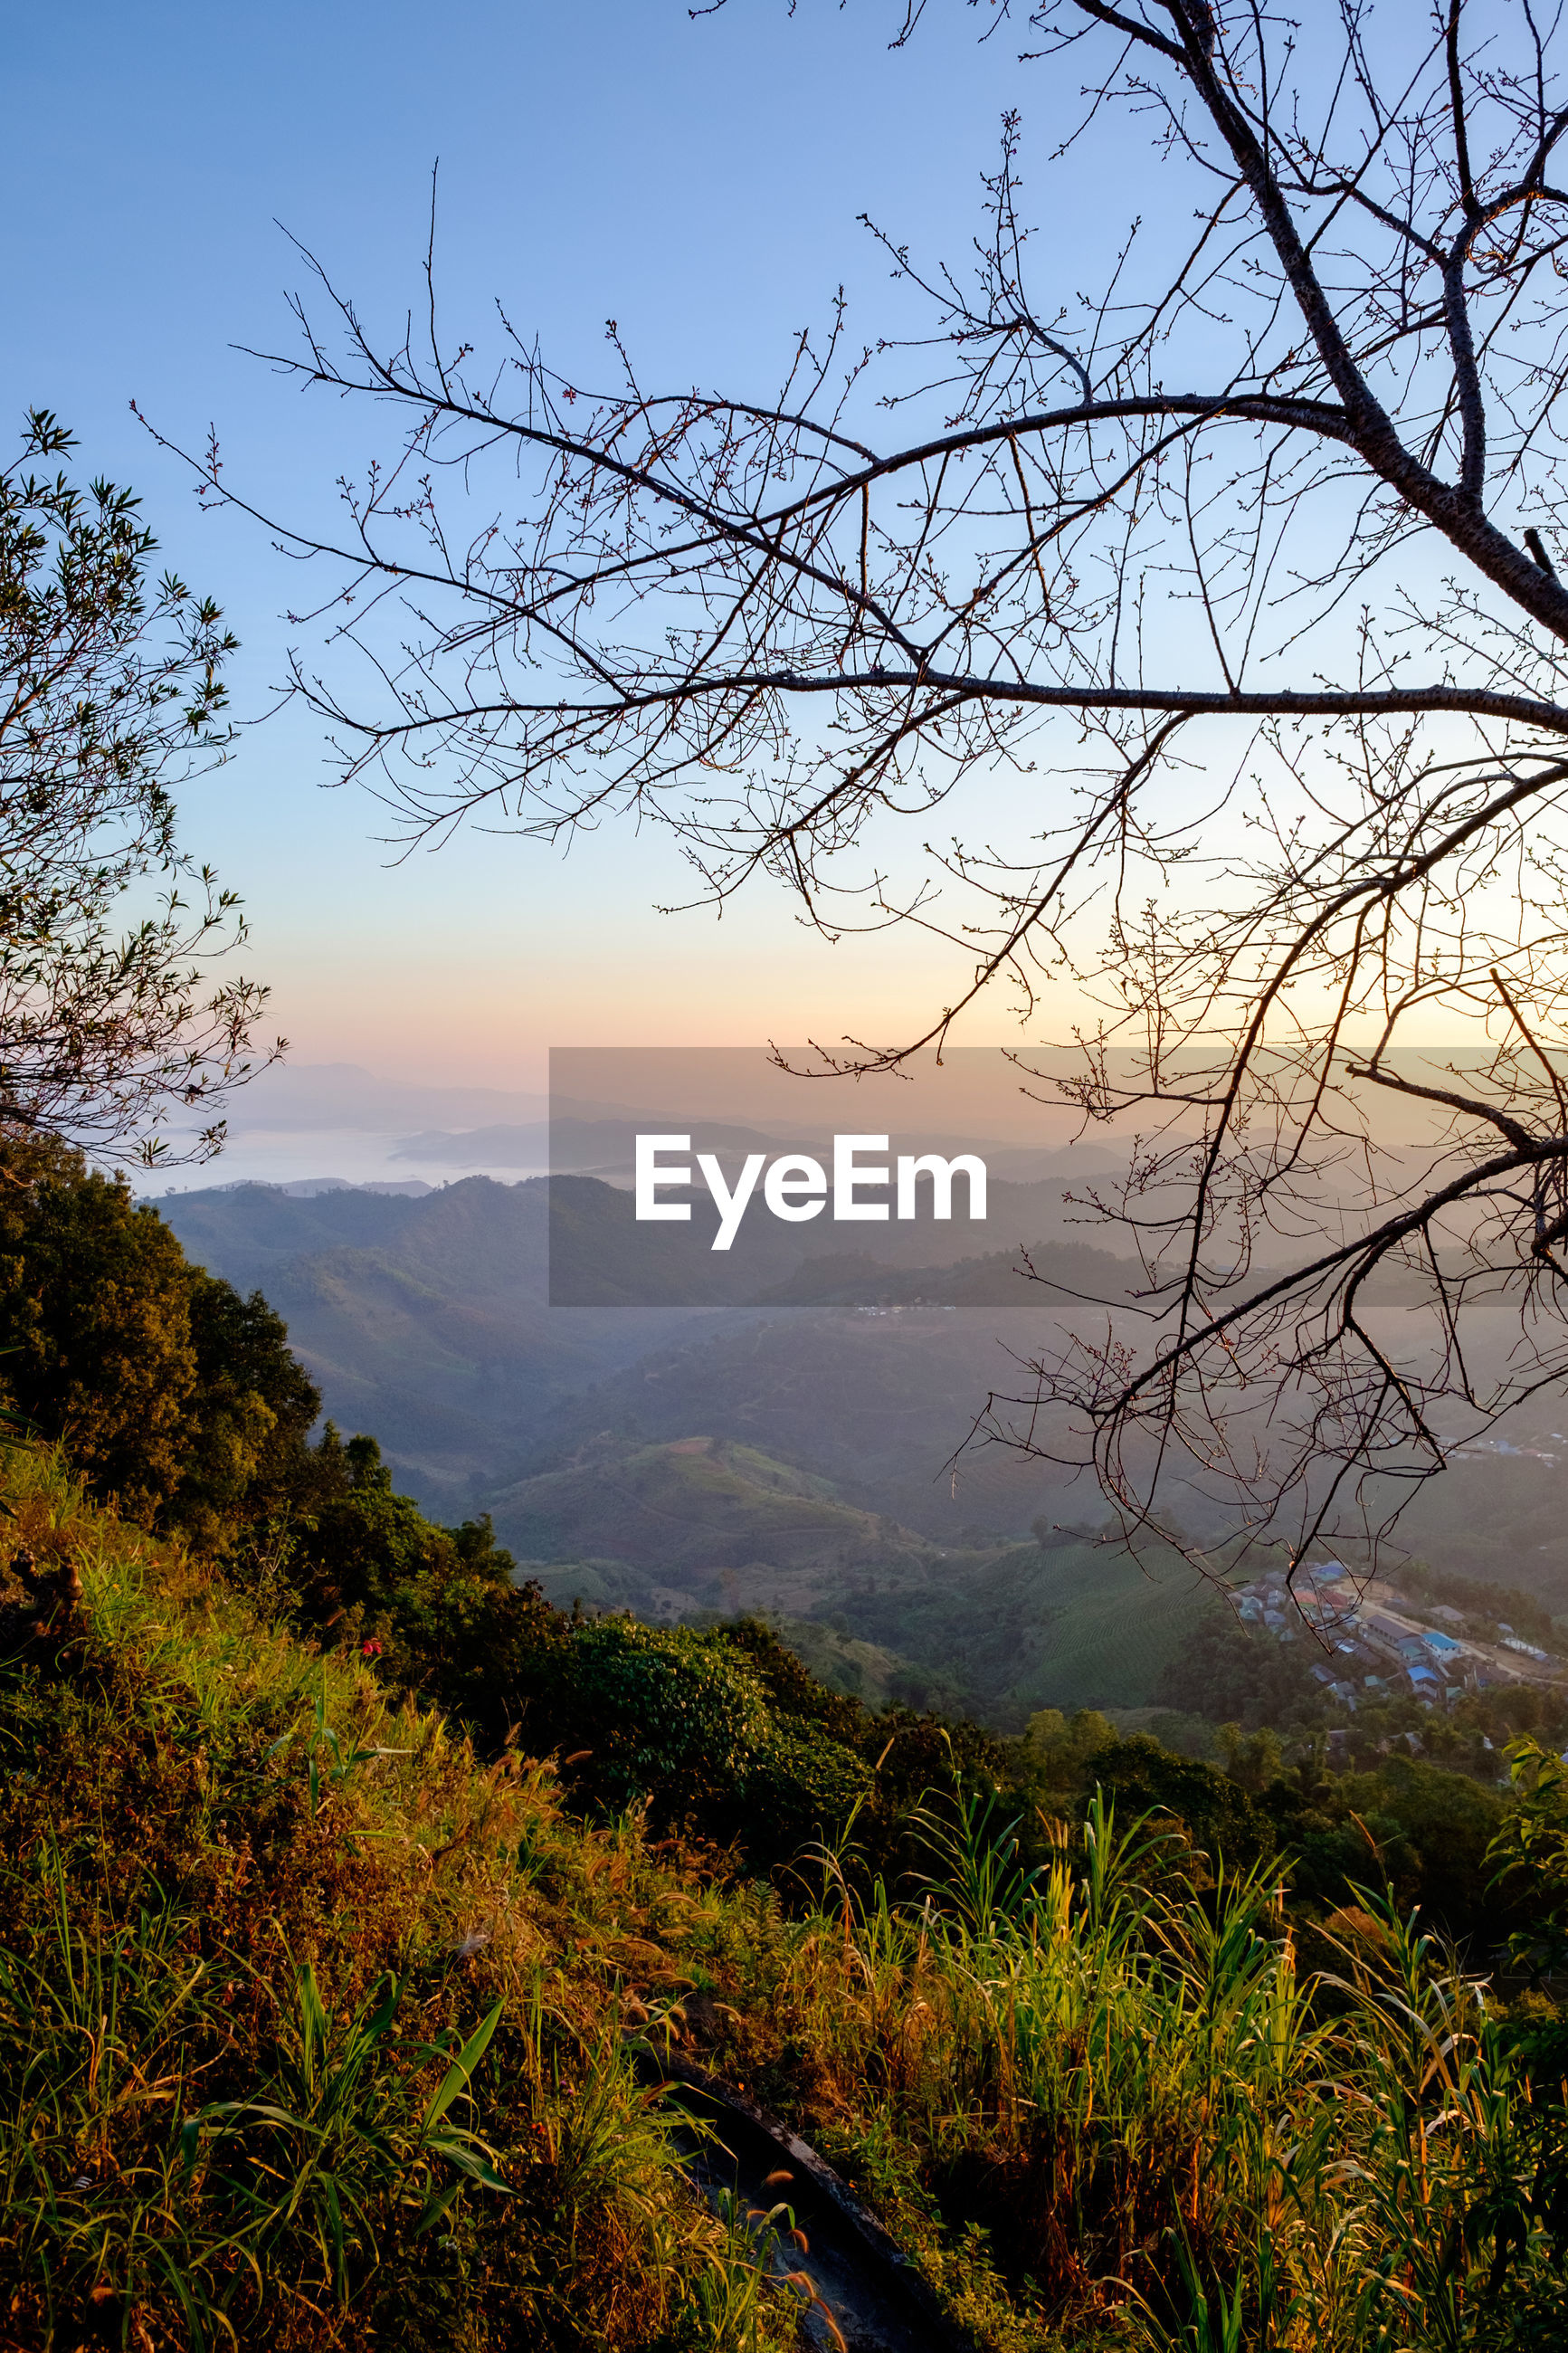 SCENIC VIEW OF TREE MOUNTAINS AGAINST SKY DURING SUNSET